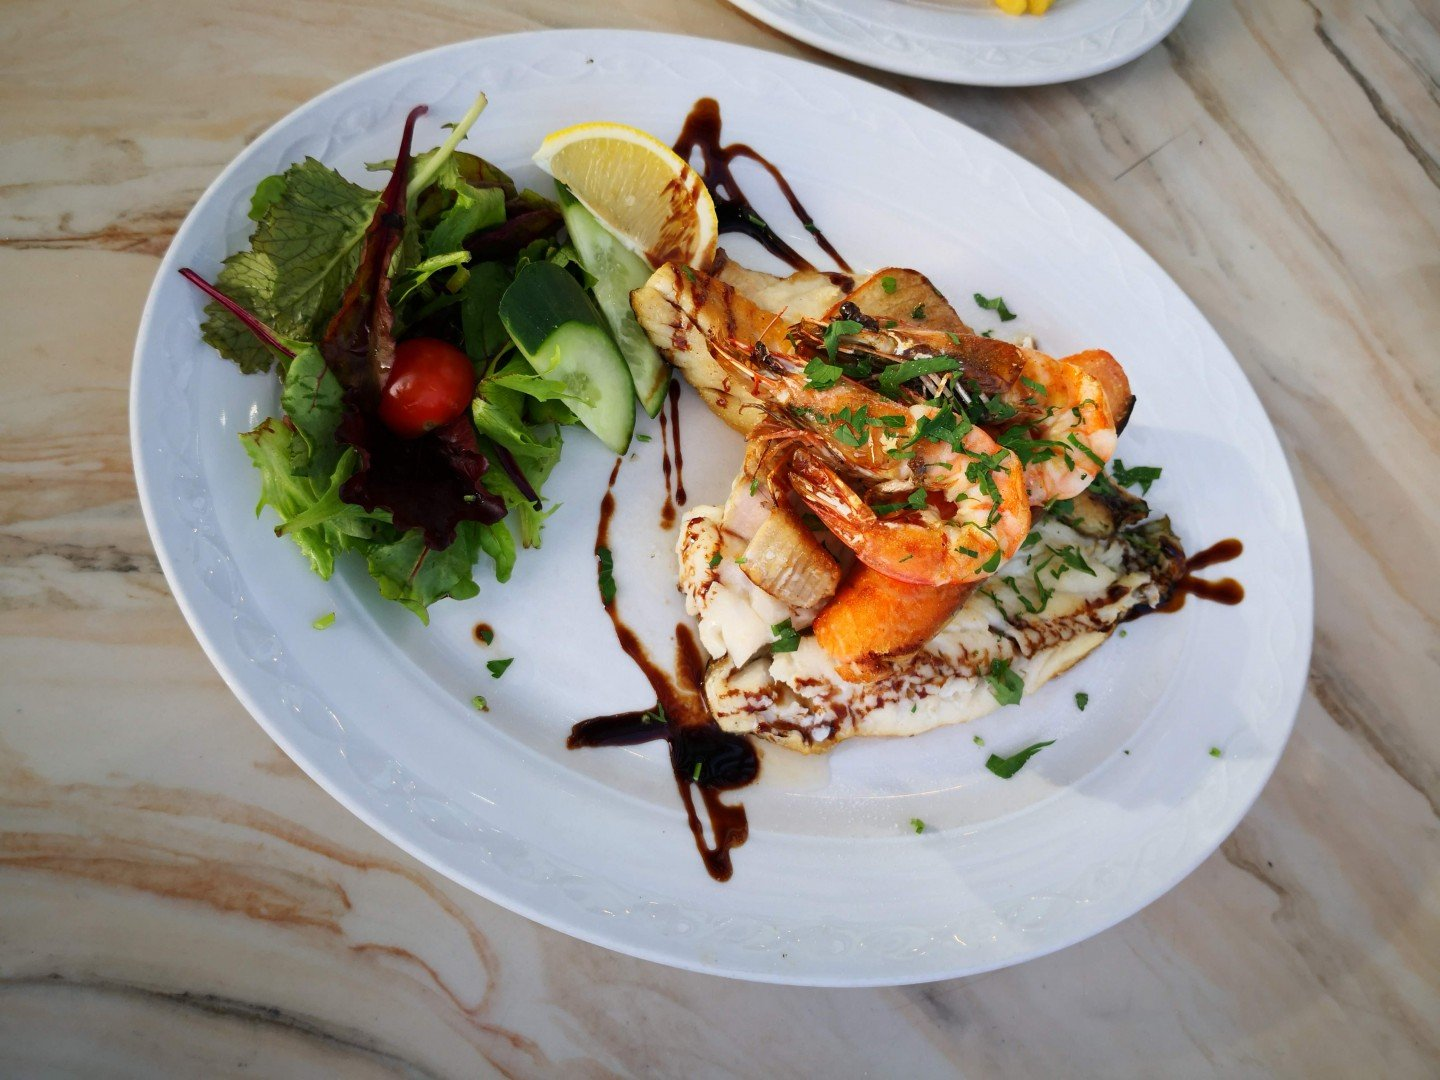 Four type of fish on a plate at Barracuda Brasserie, Brighton Marina